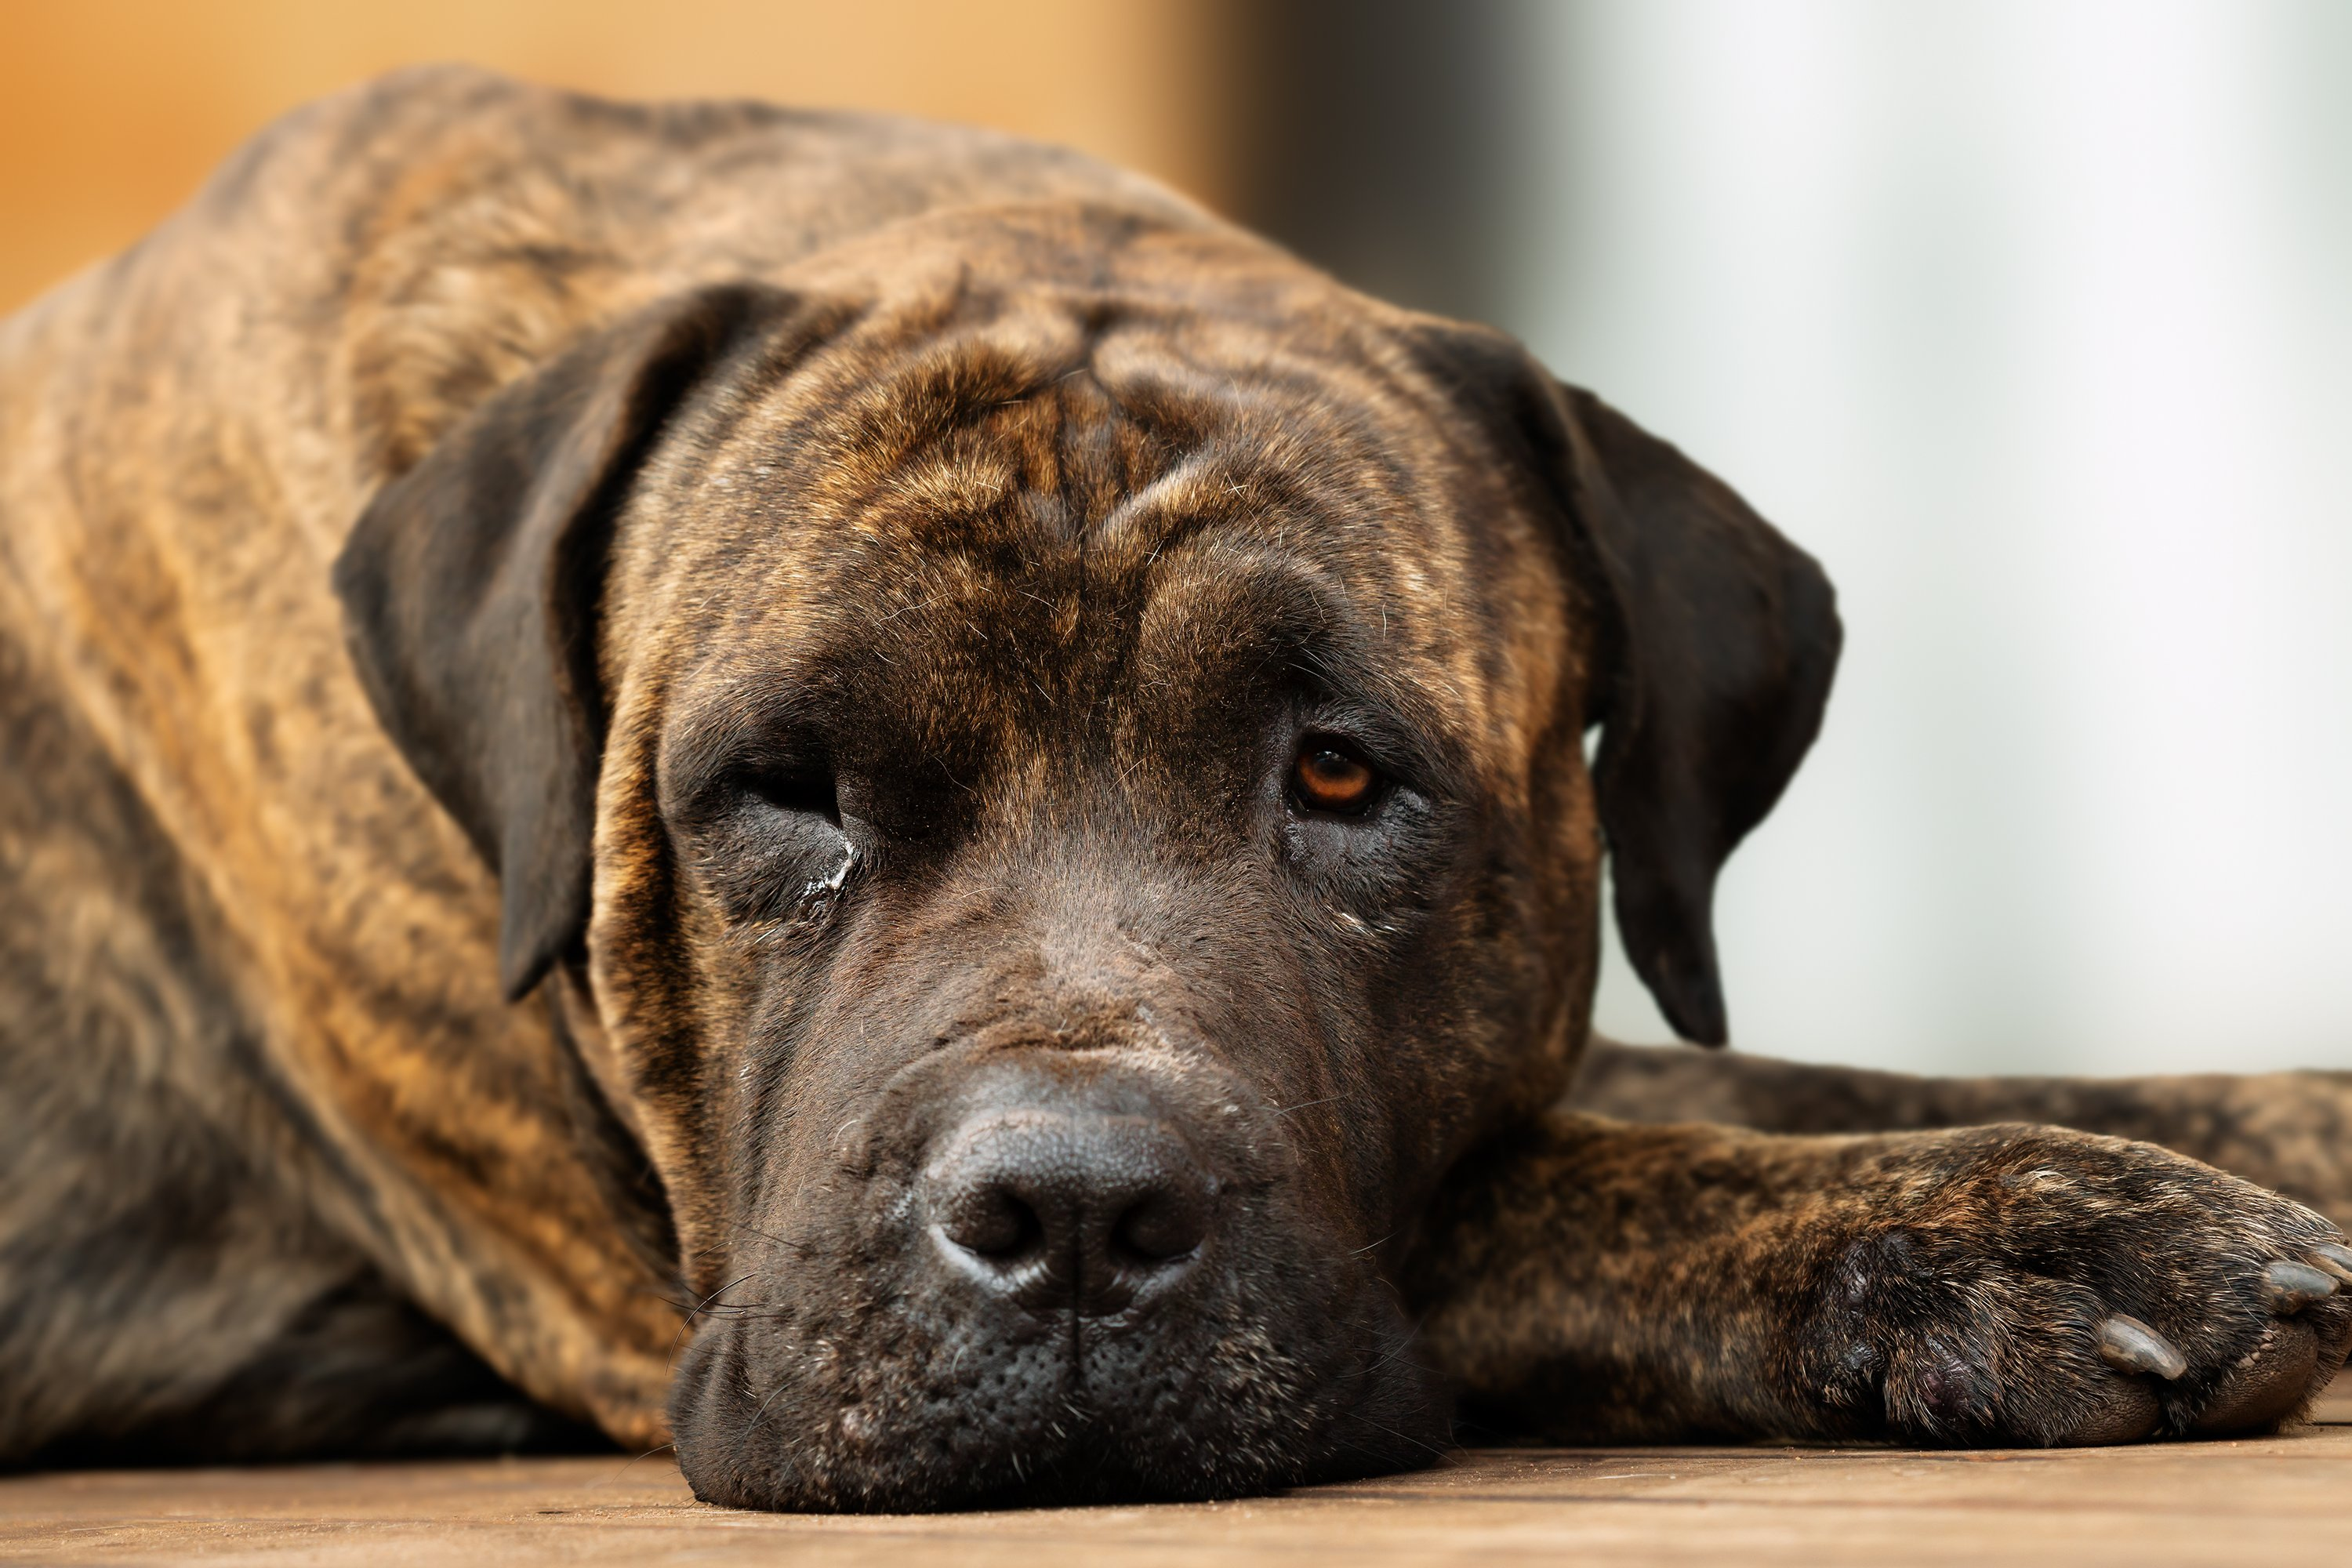 Adult Large Brown Domestic Dog Resting with One Eye Open |  Source: Getty Images